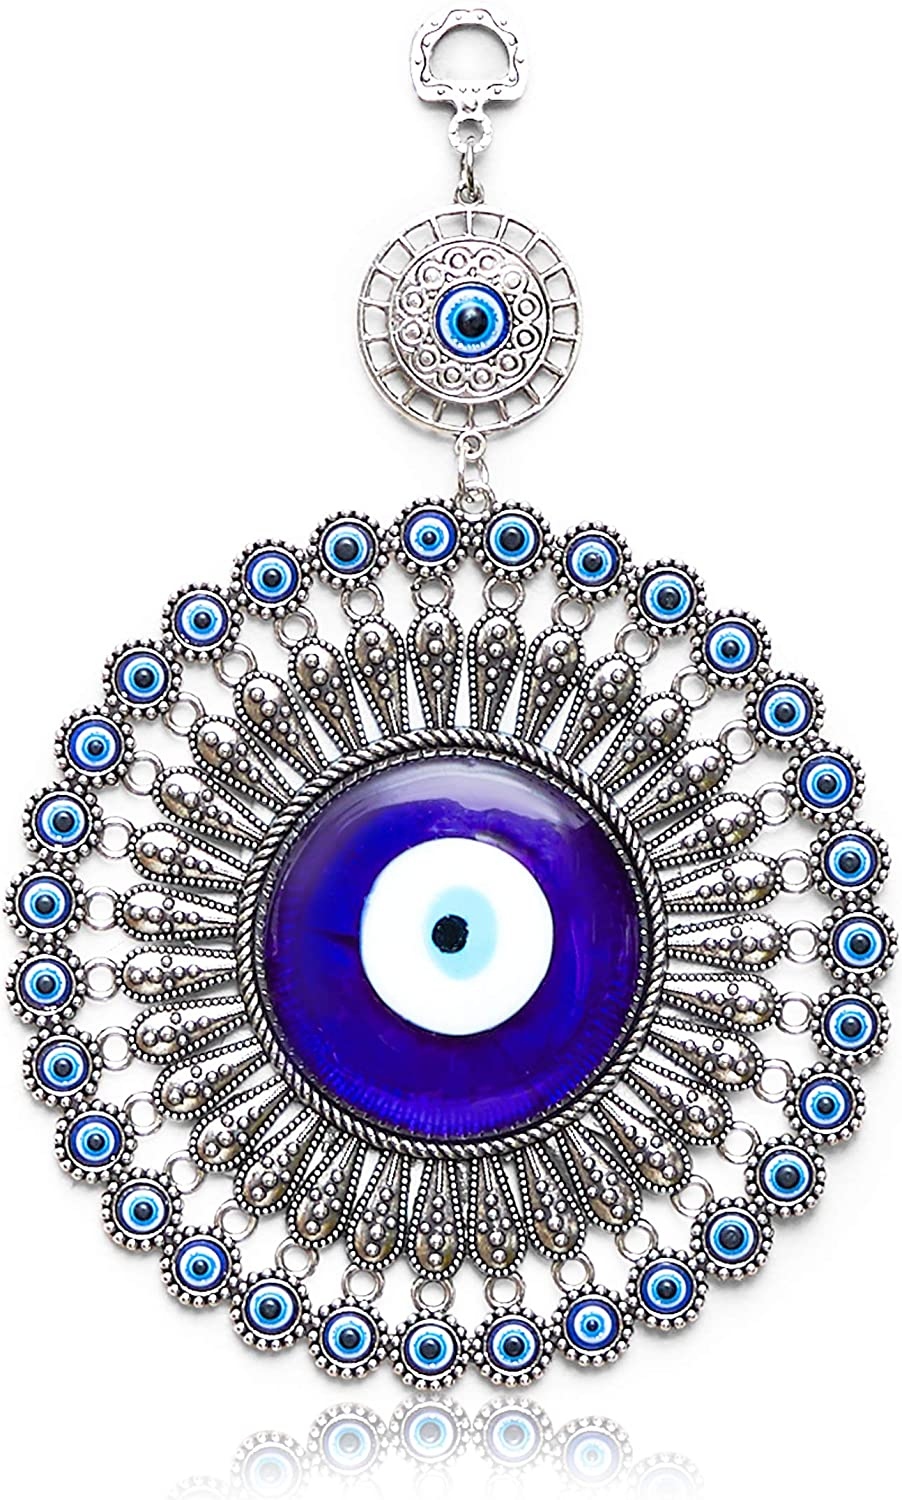 Evil Eye Wall Hanging, Turkish Amulet Decoration (Blue Glass, 5 Inches)